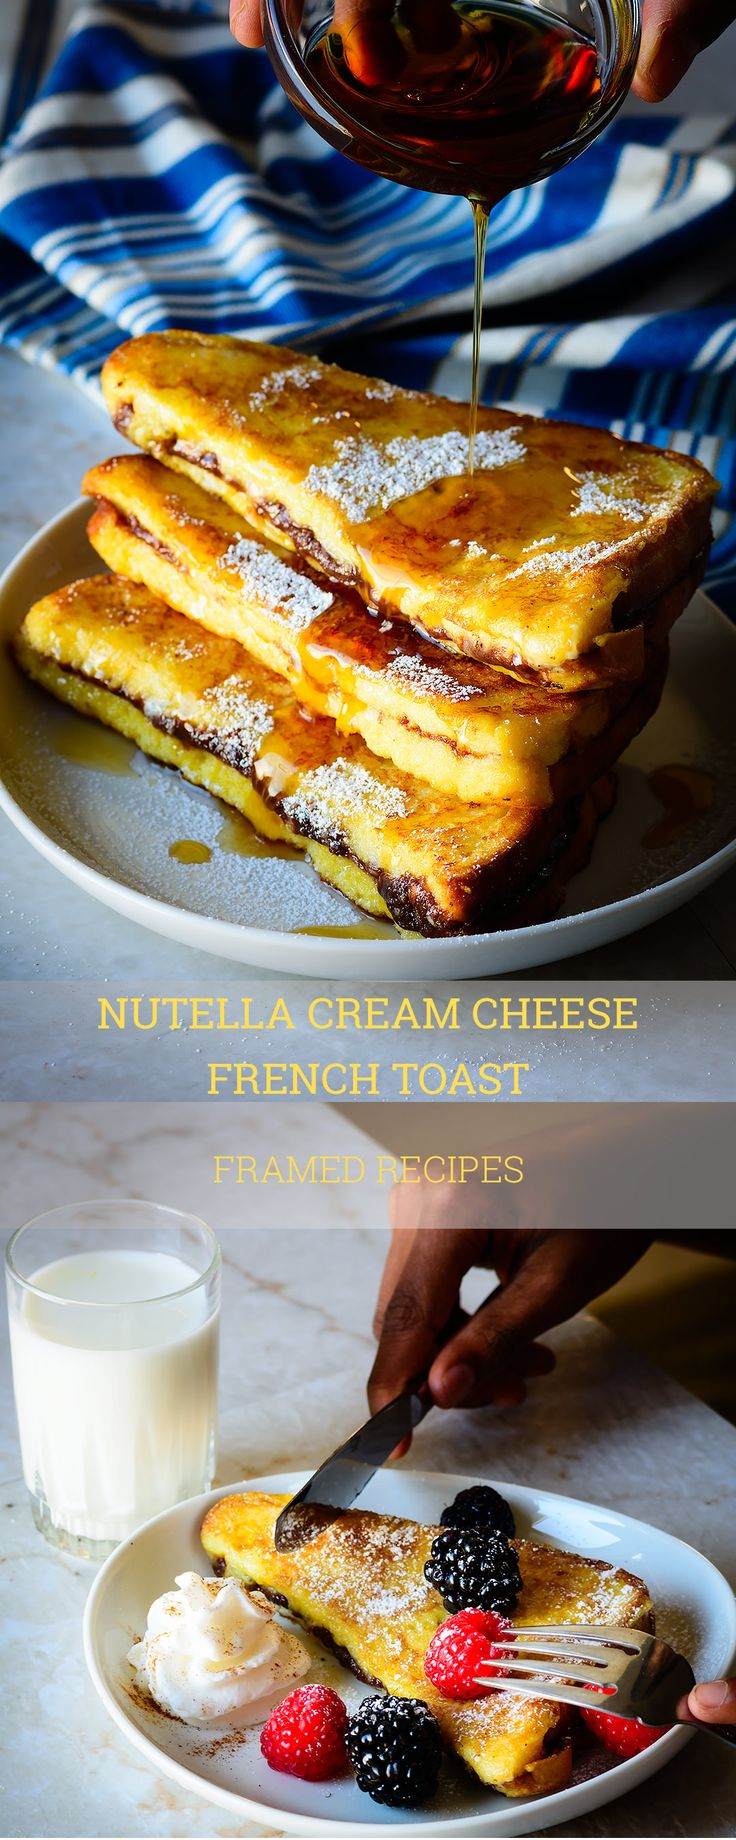 Nutella cream cheese French Toast - just because you want to serve a happy, sweet and indulgent breakfast.